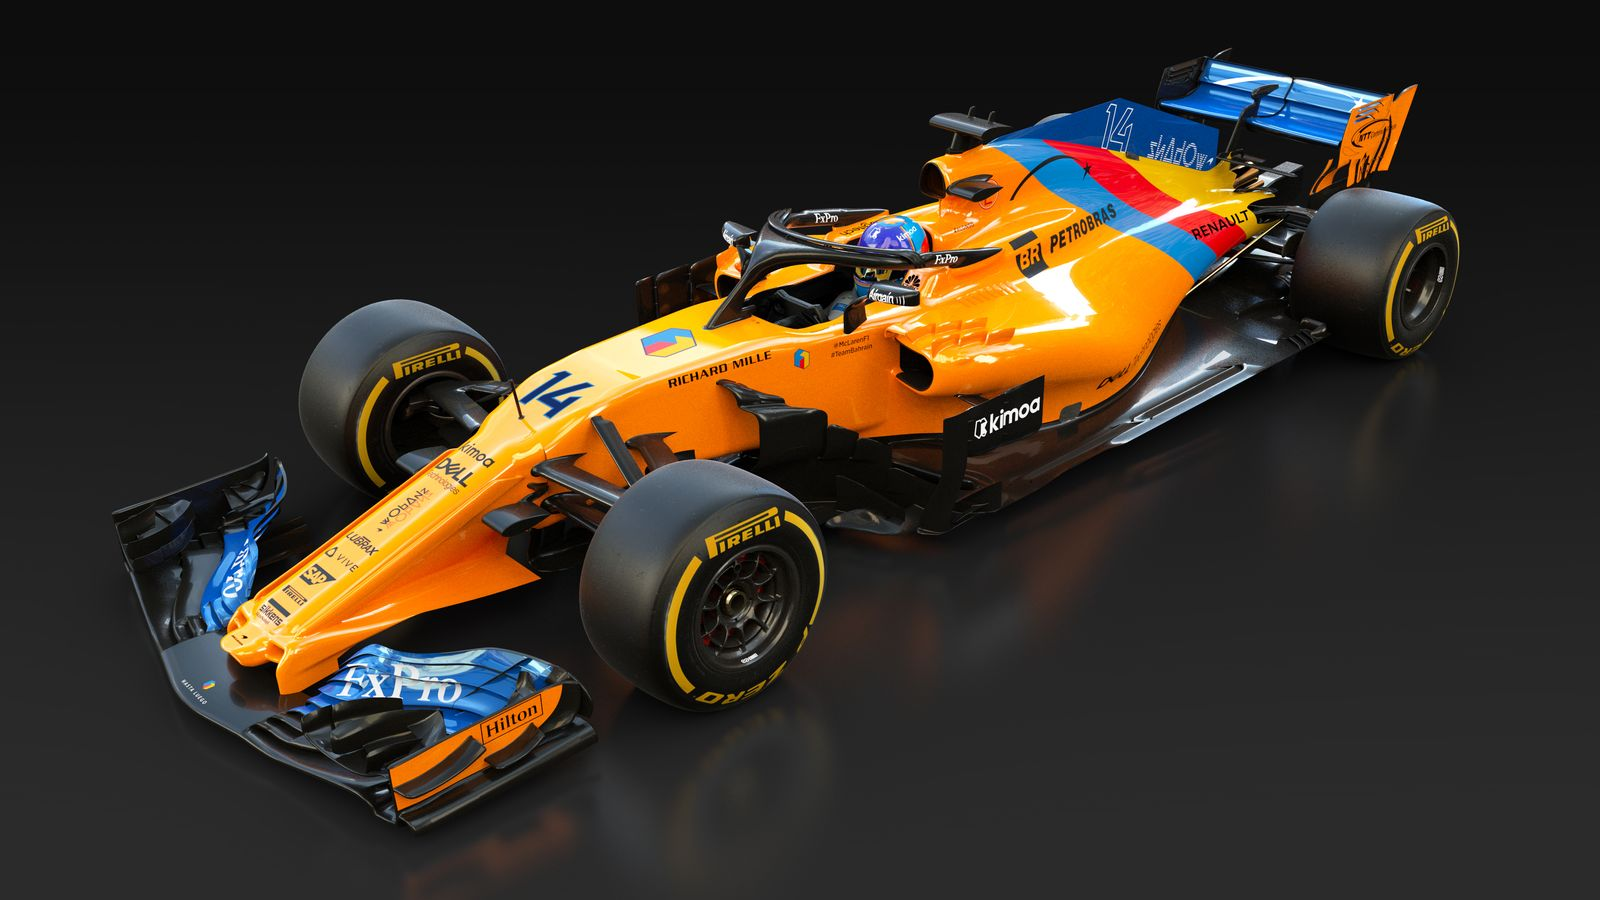 Fernando Alonso F1 Grand Prix Photo Special One Off Livery For Fernando Alonso Formula 1